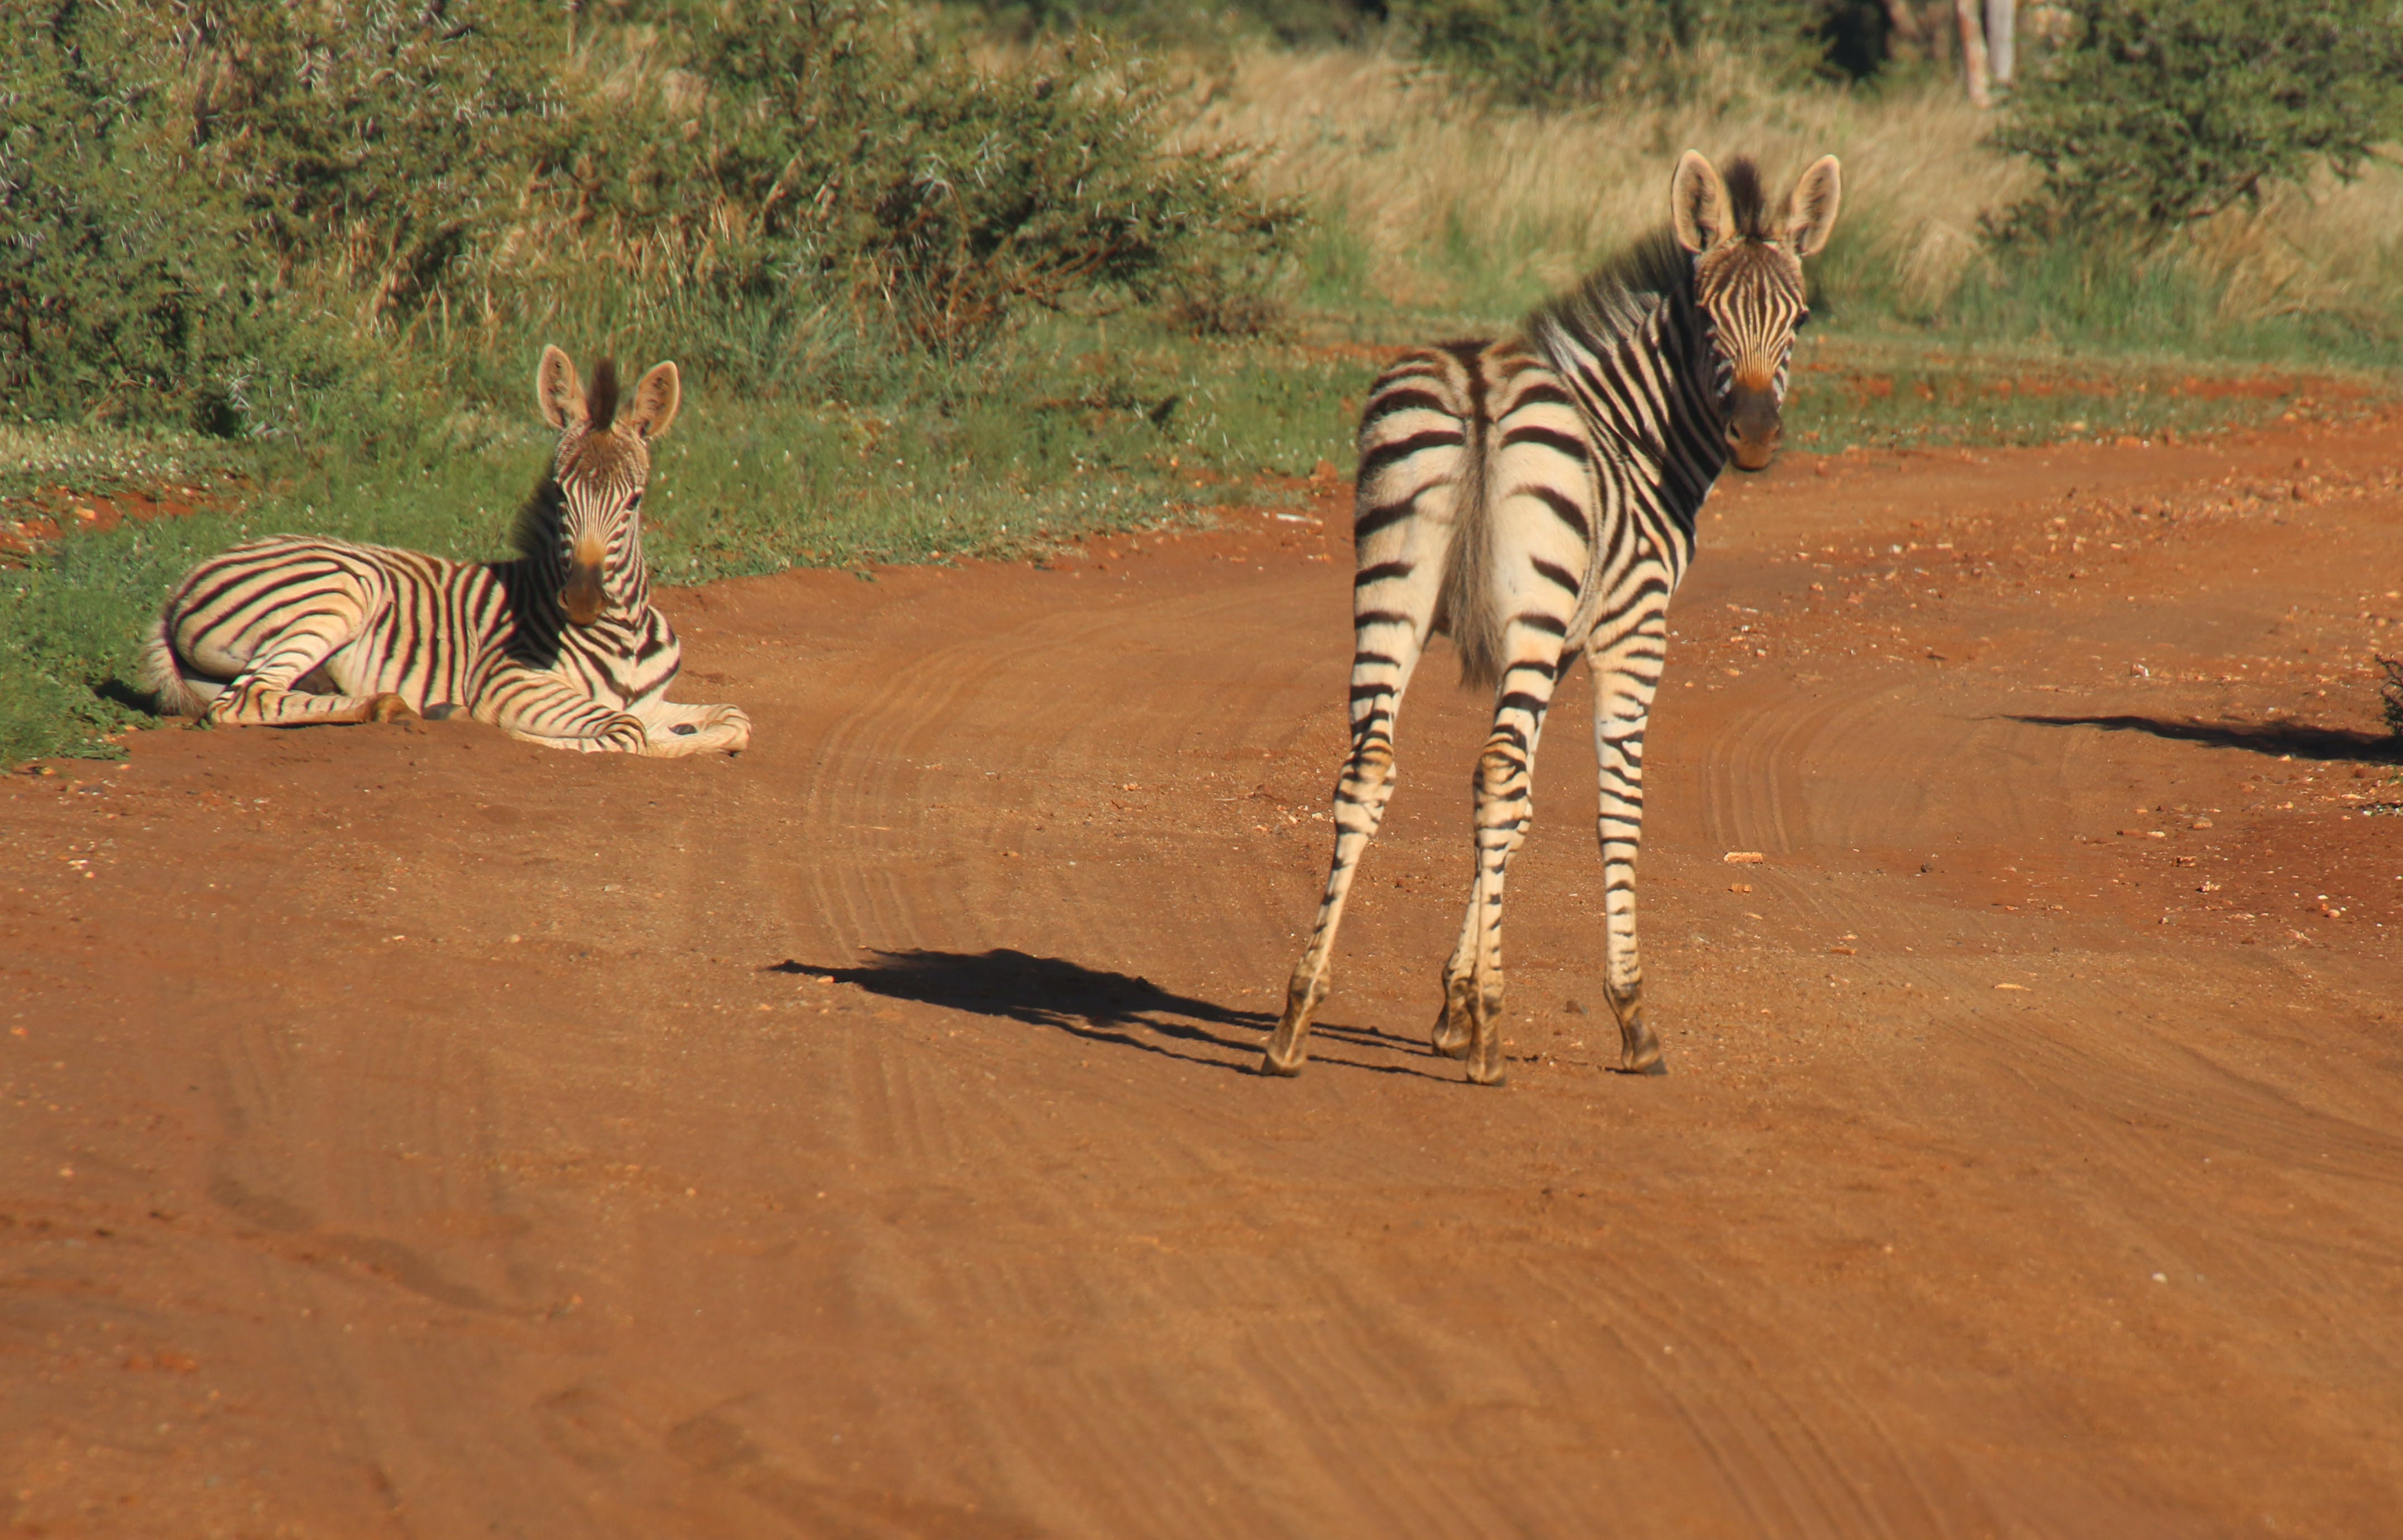 Photography of Two Zebras on Road